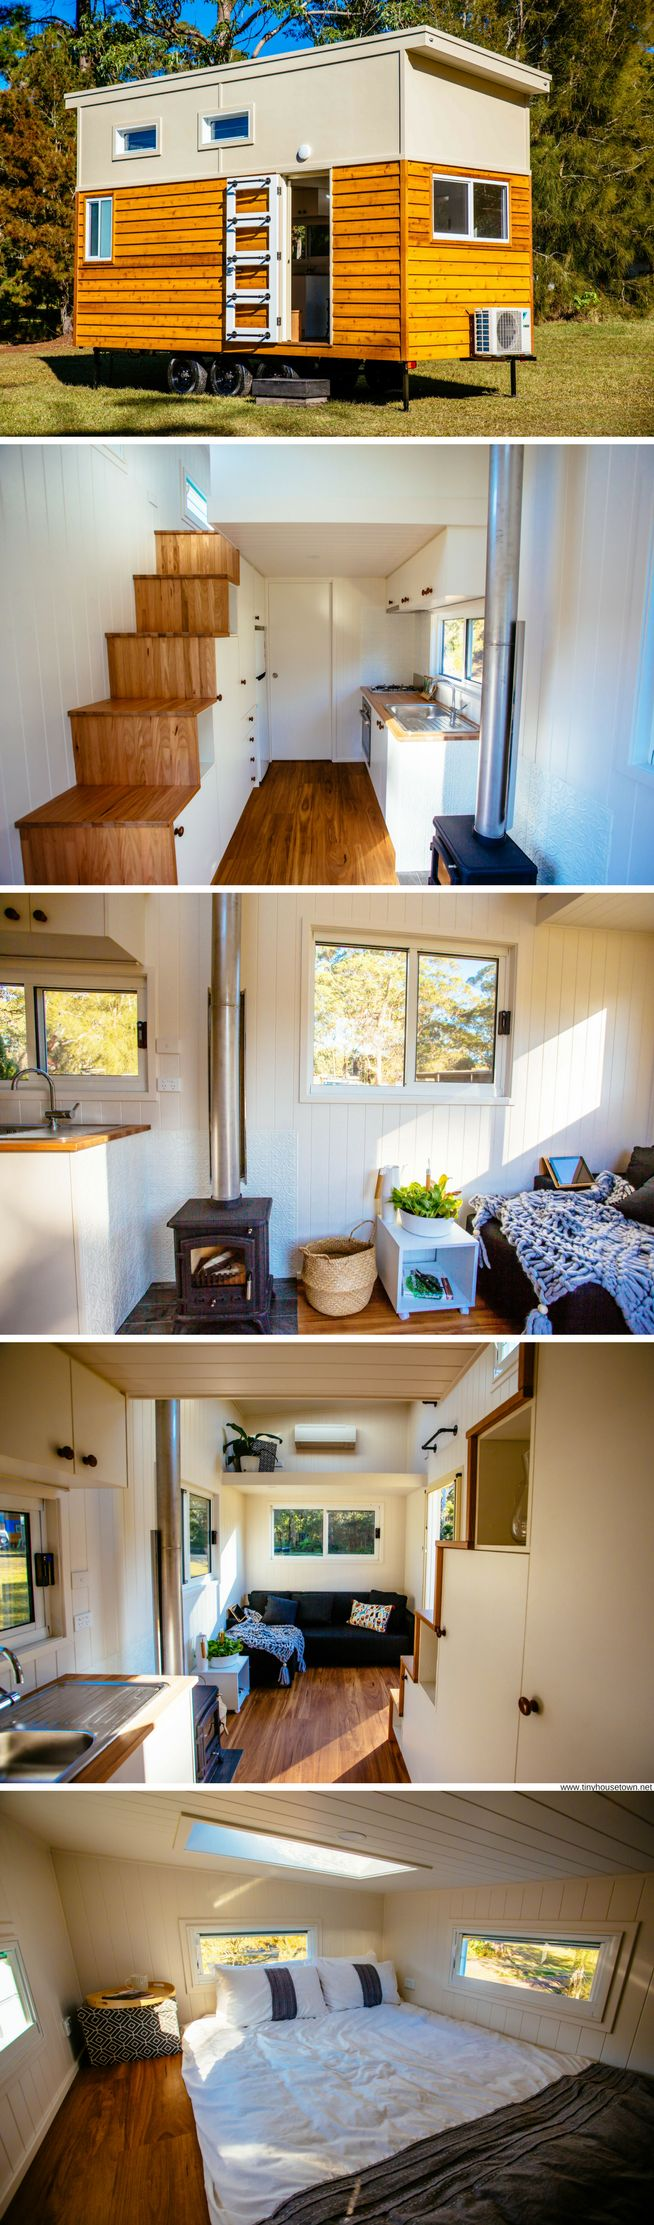 Der Ofen - The Graduate Series from Designer Eco Tiny Homes